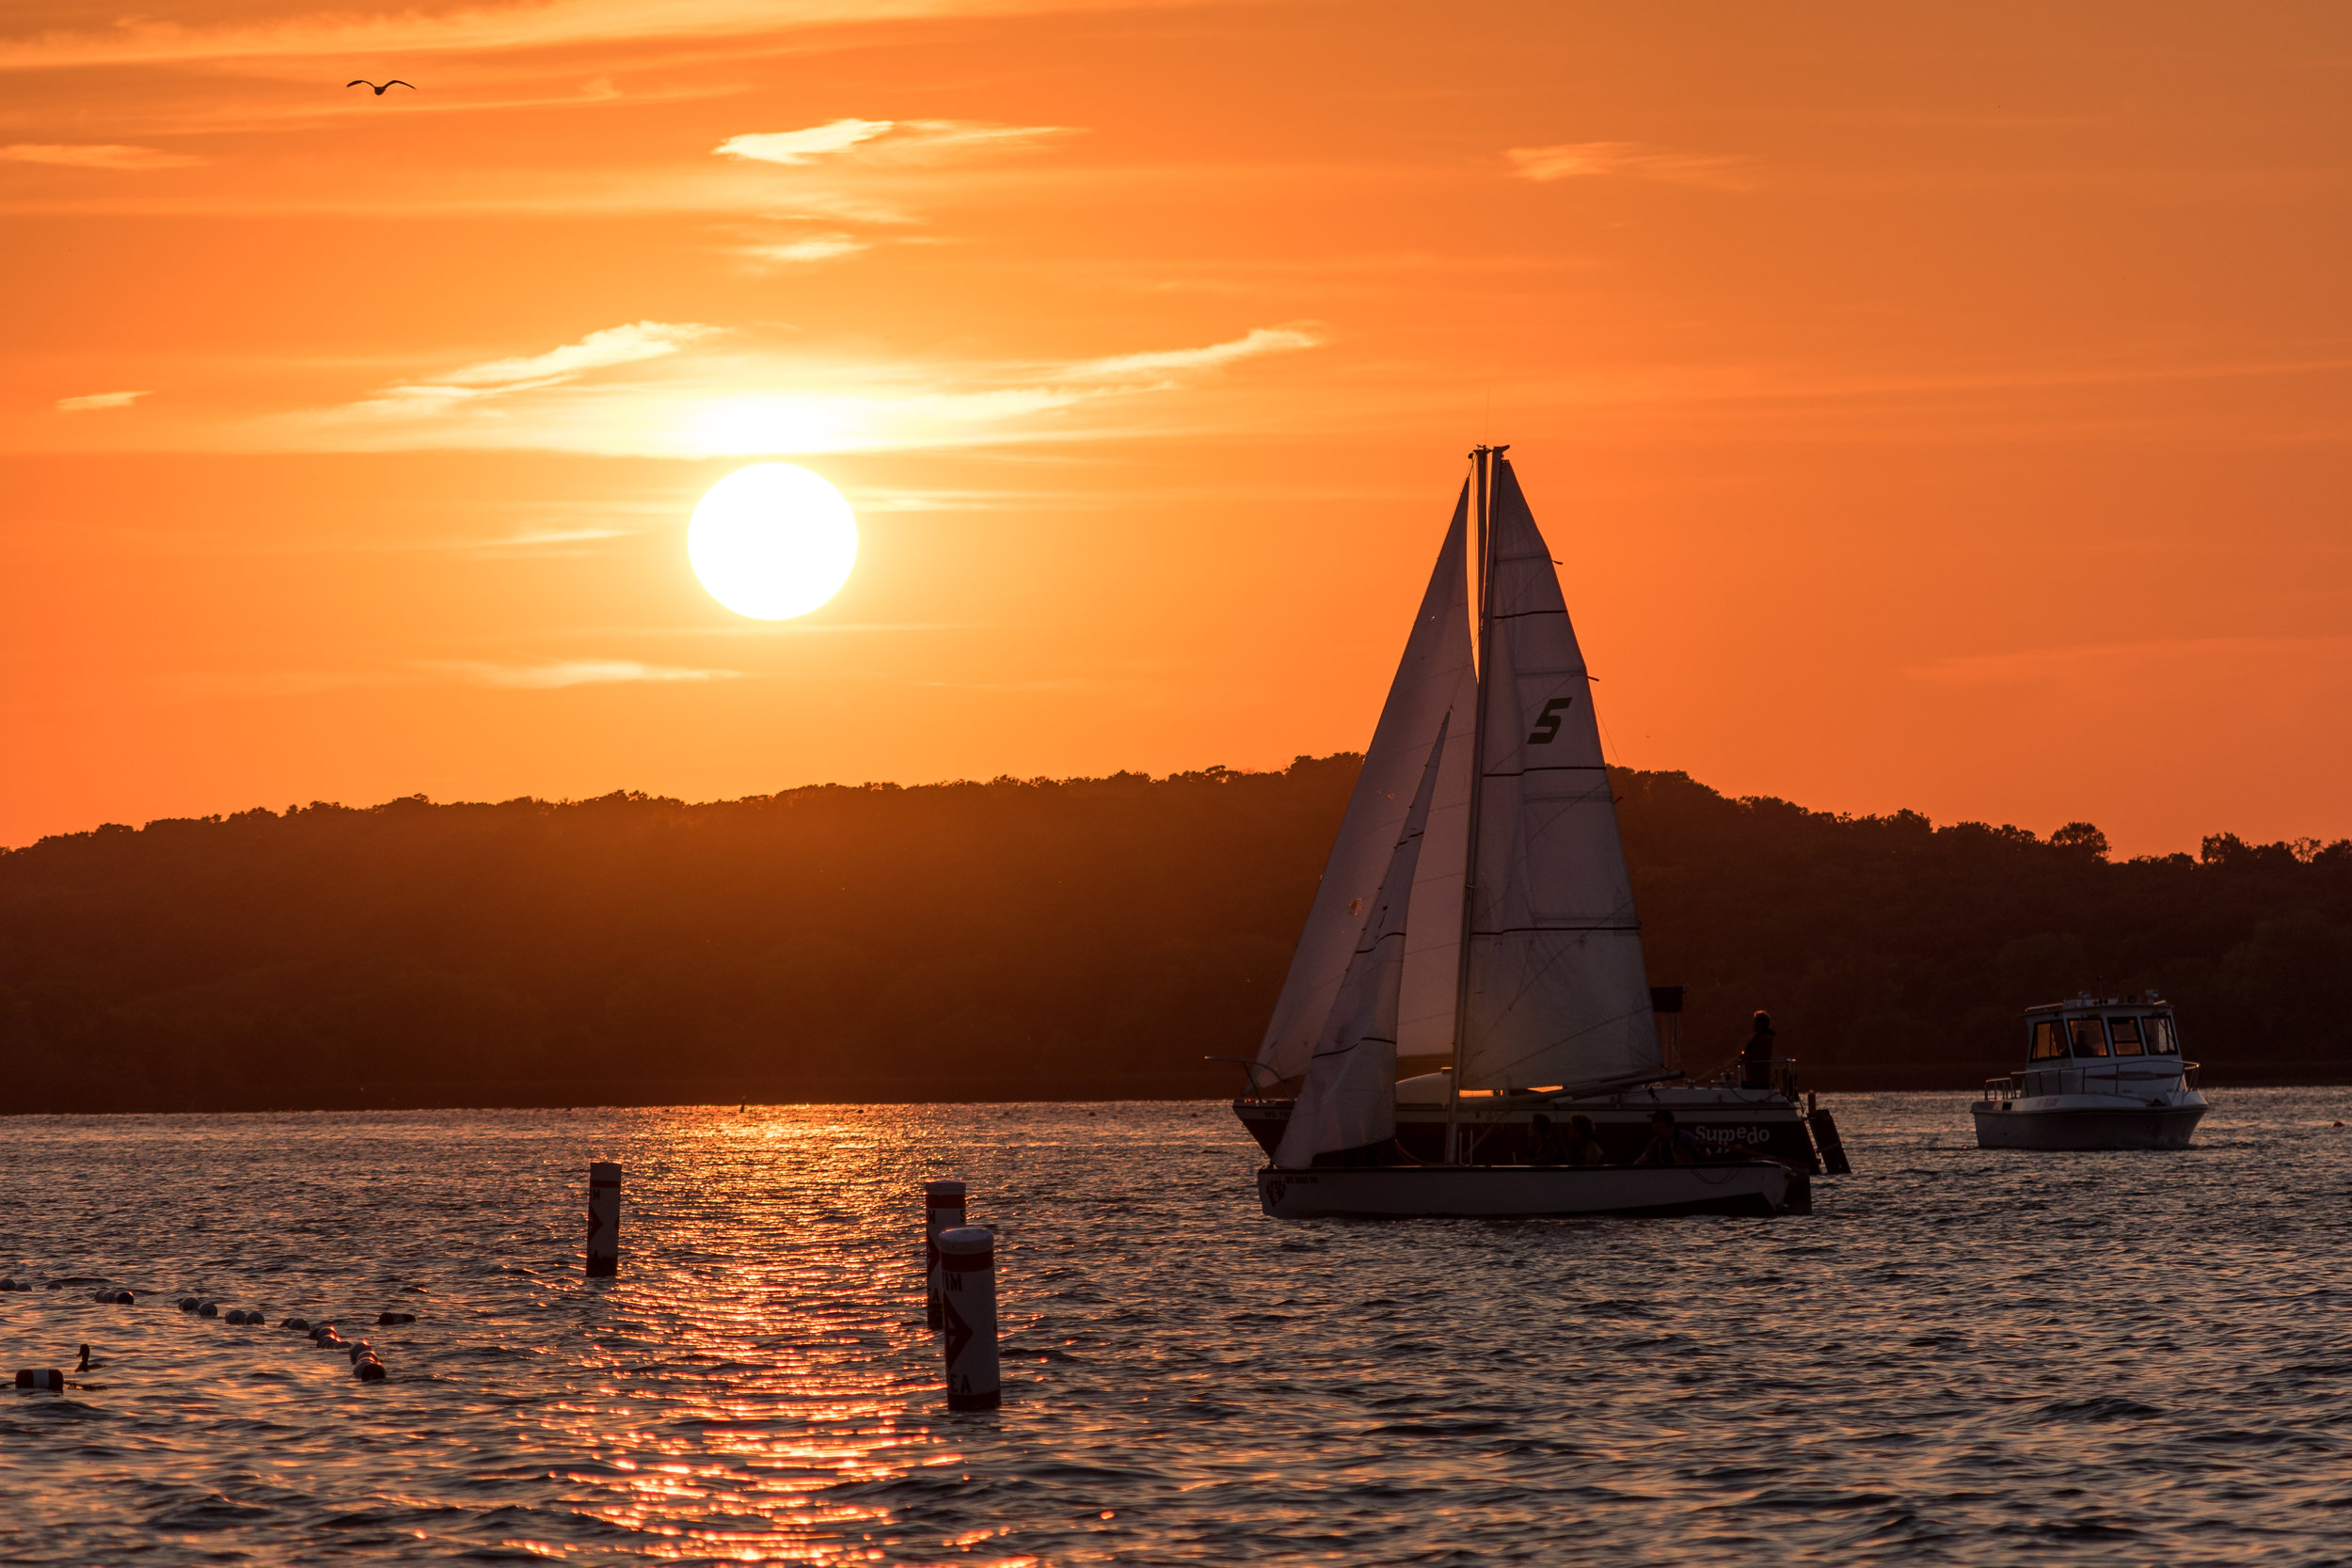 Sail_Boat_Sunset.jpg